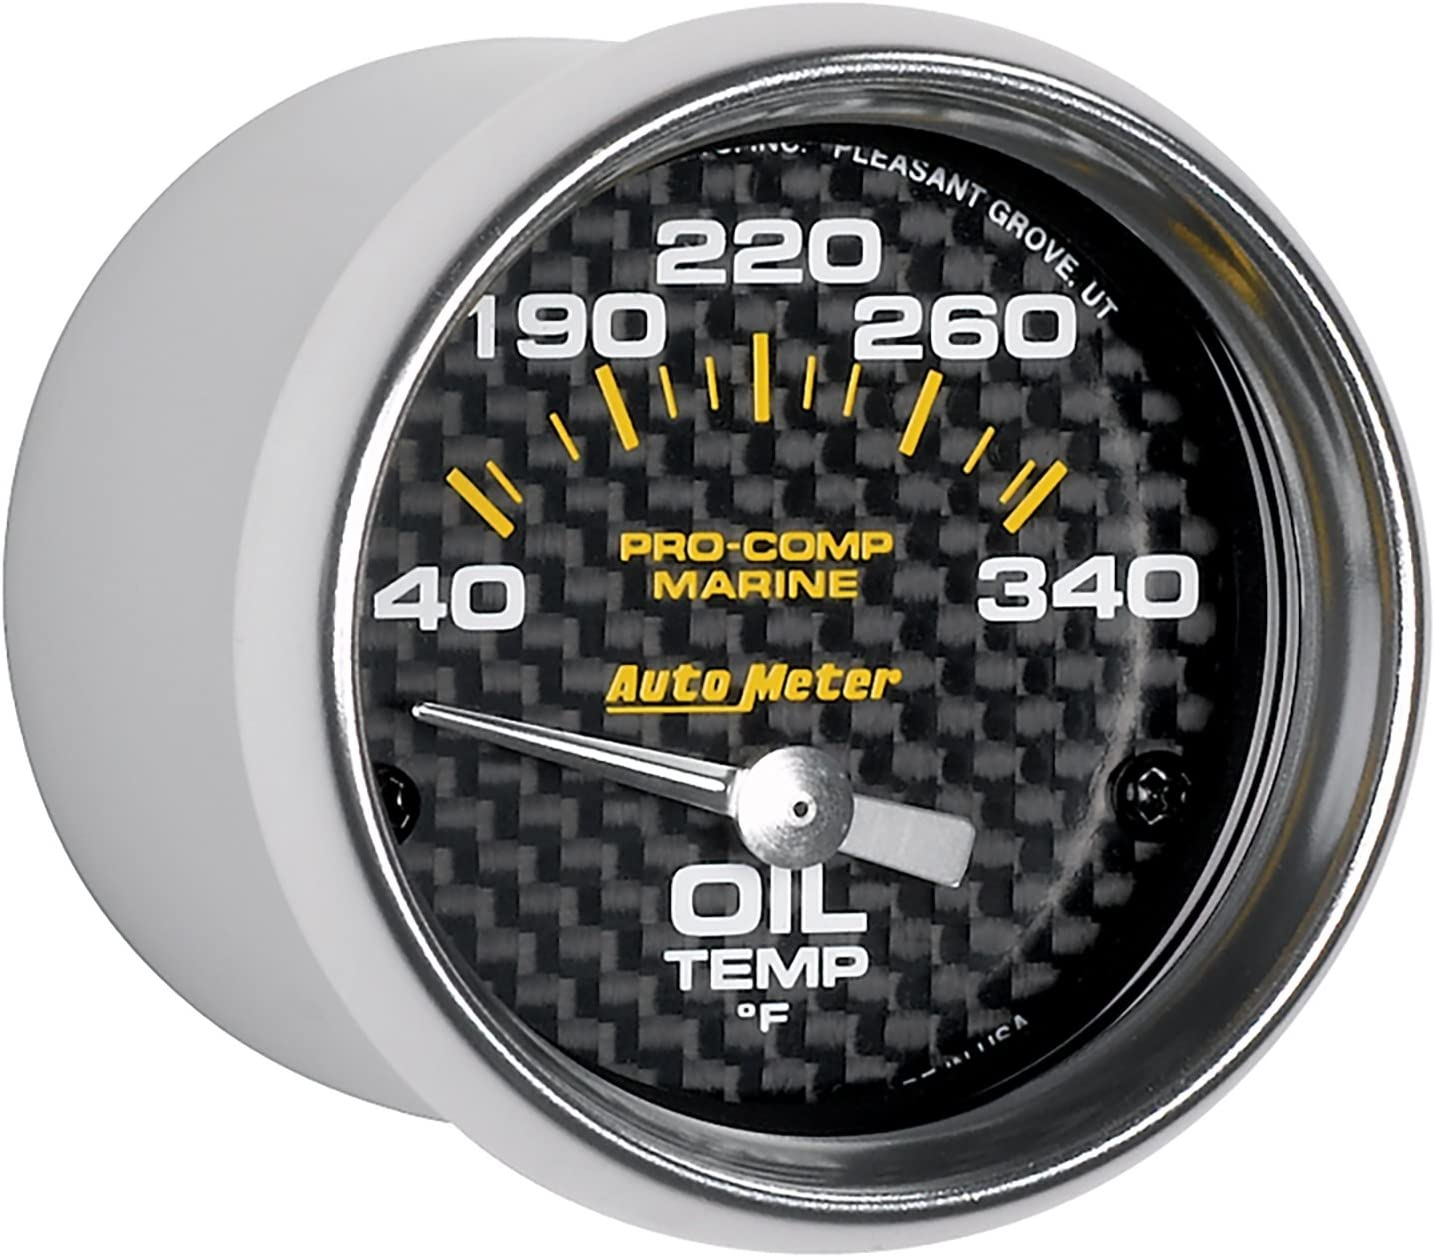 Carbon Fiber Dial Face Silver Pointer White Incandescent Lighting Air Core 140-340 Degree F Marine Electric Oil Temperature Gauge AutoMeter 200764-40 Marine Electric Oil Temperature Gauge 2-1//16 in